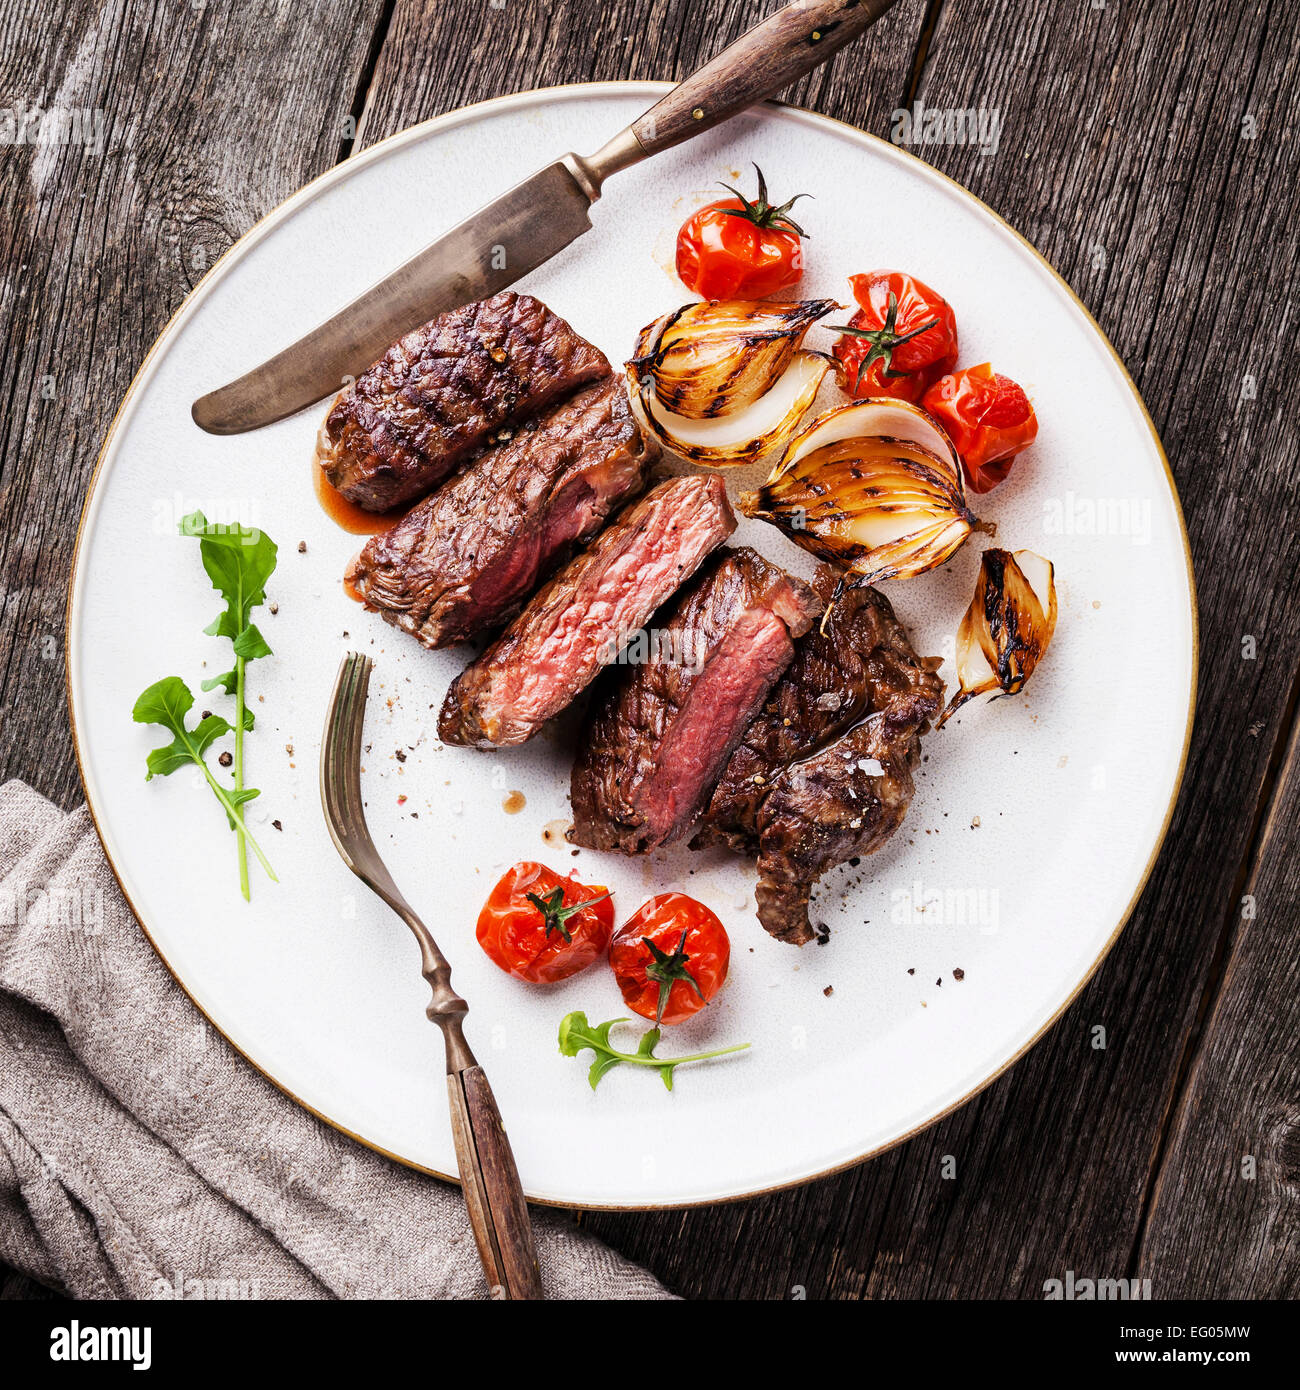 Sliced Steak High Resolution Stock Photography And Images Alamy